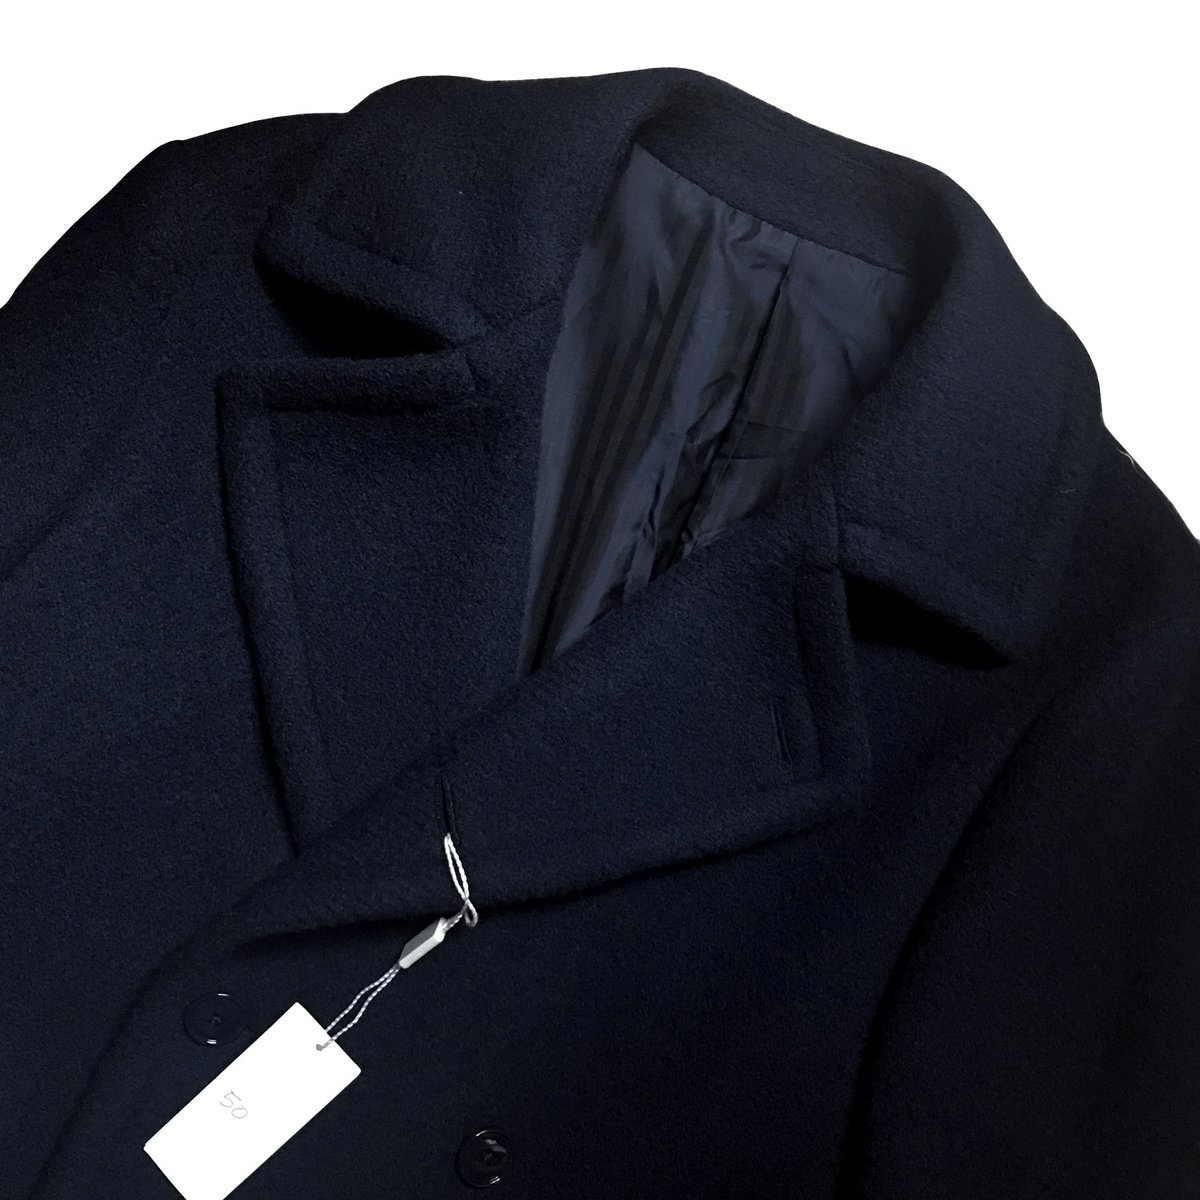 mp massimo piombo double breasted brushed wool coat detail 2.jpg